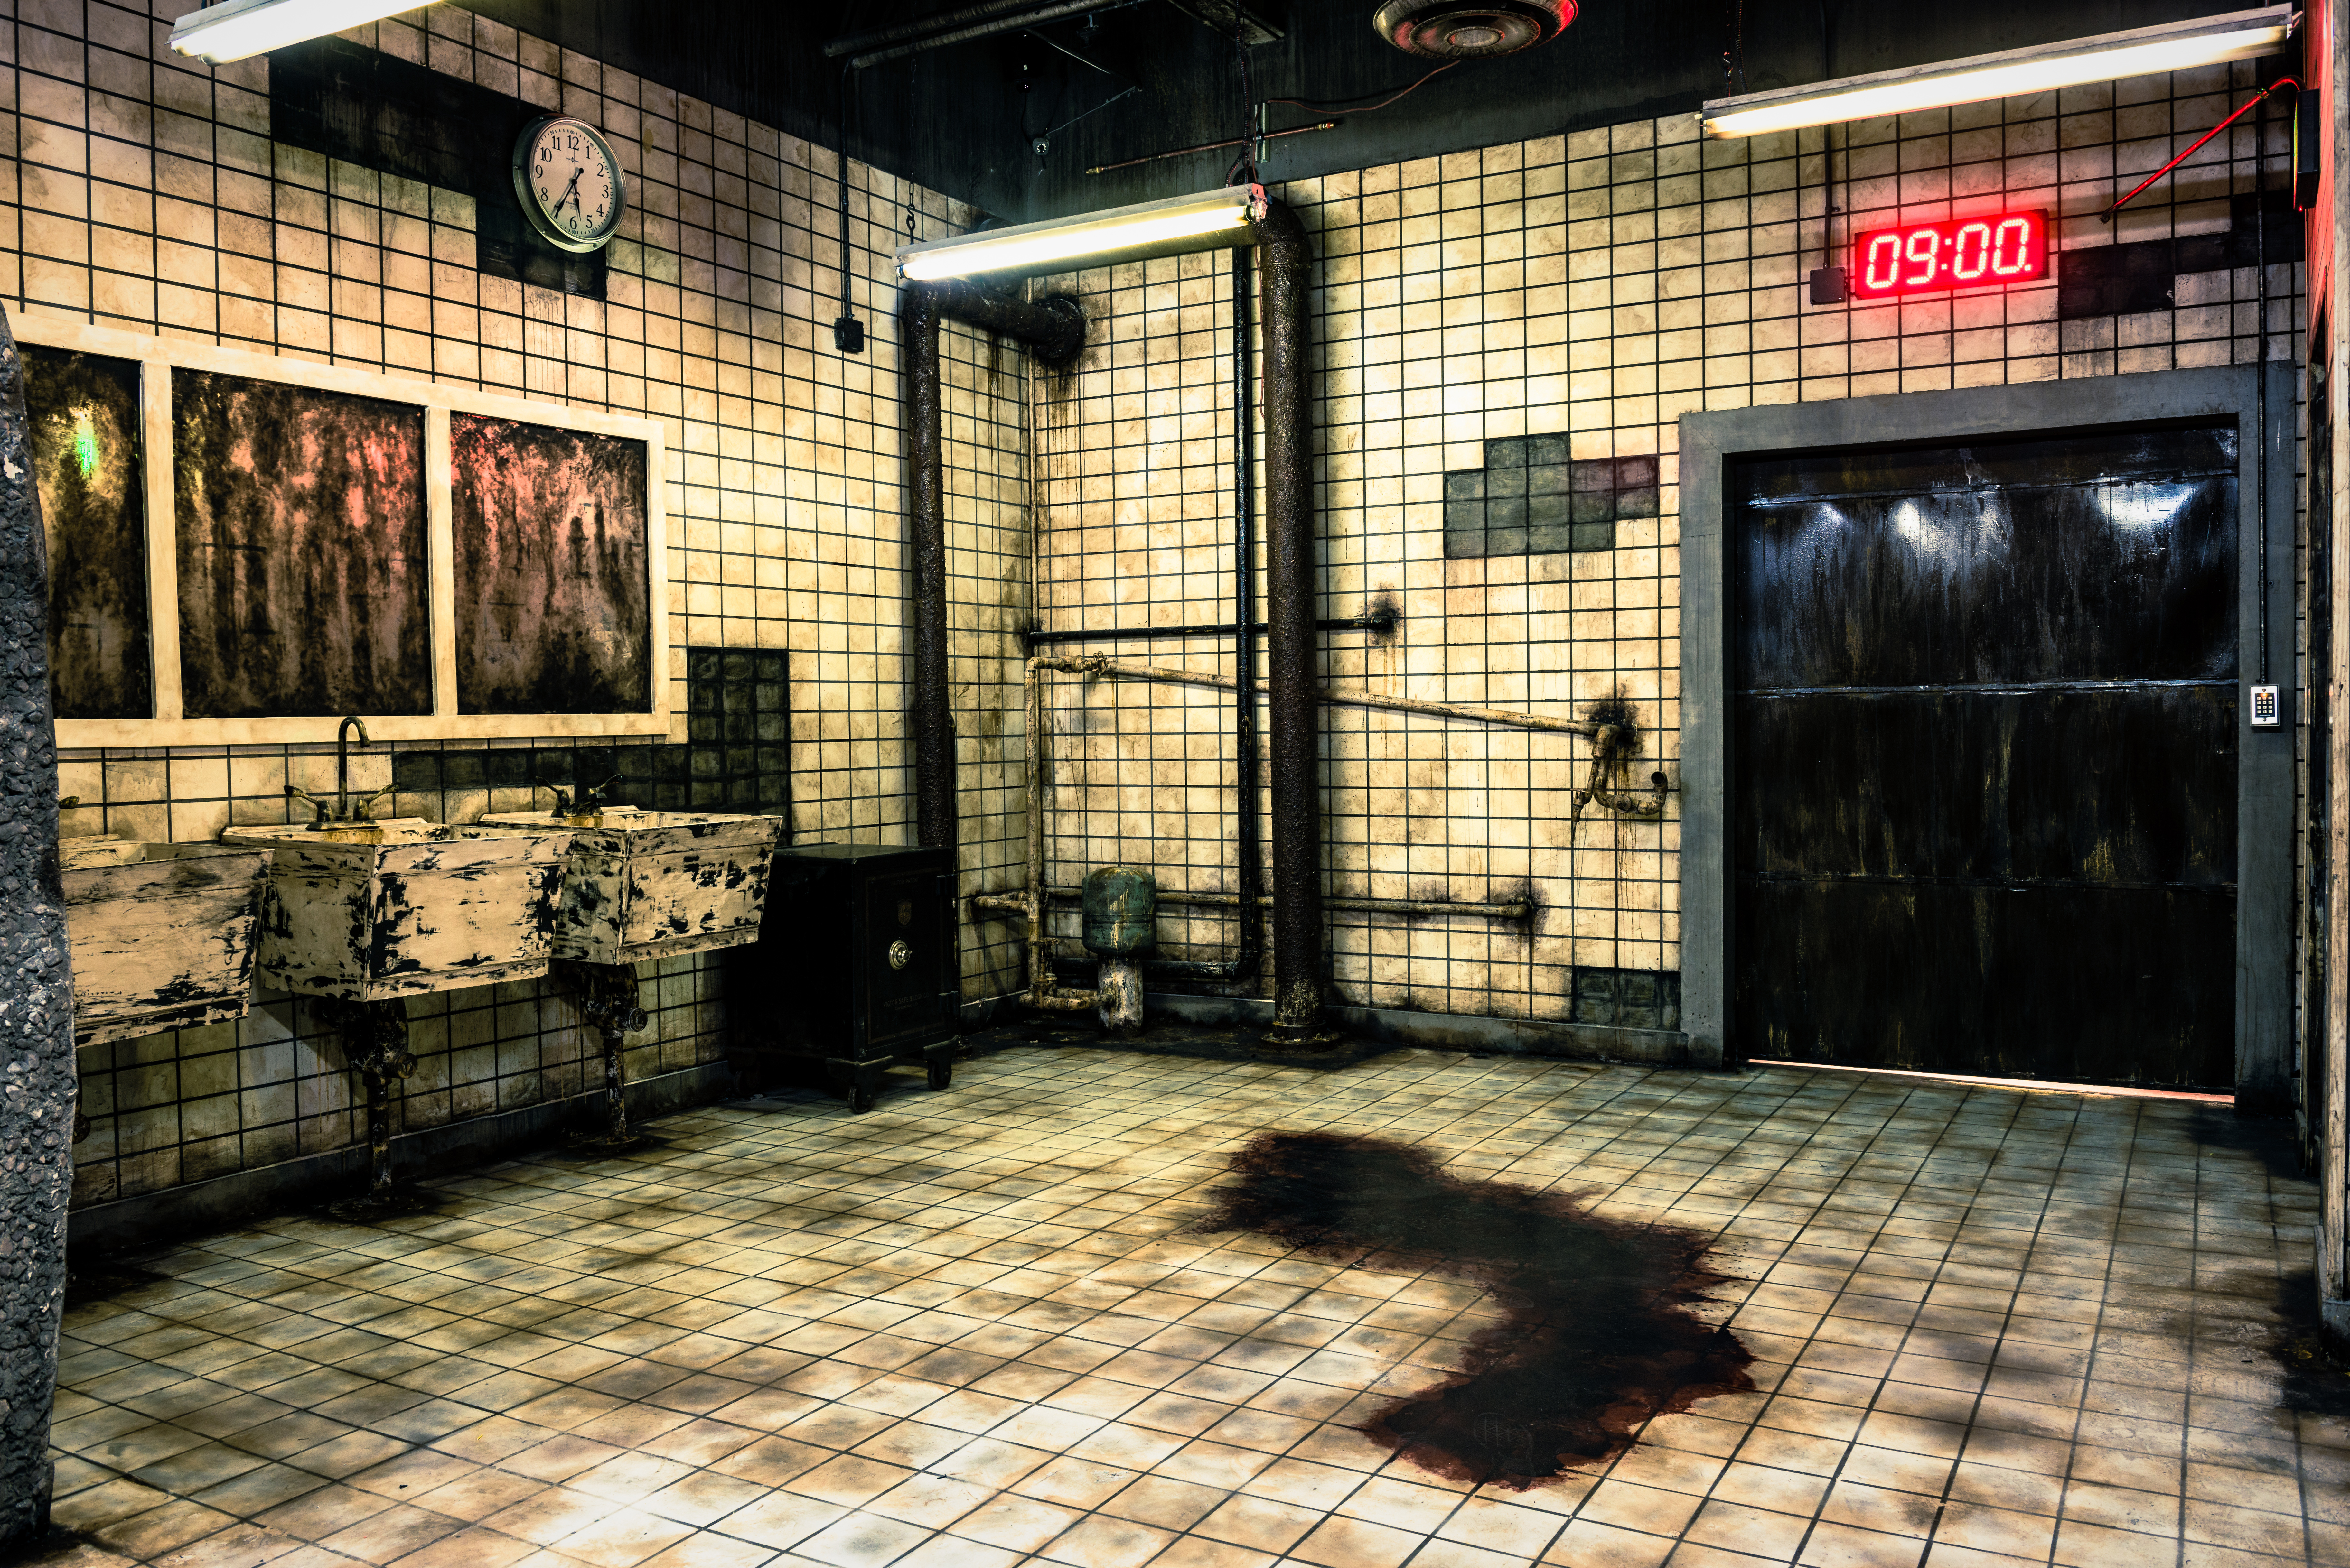 Event Report] The Official Las Vegas \'Saw\' Escape Room - Bloody ...